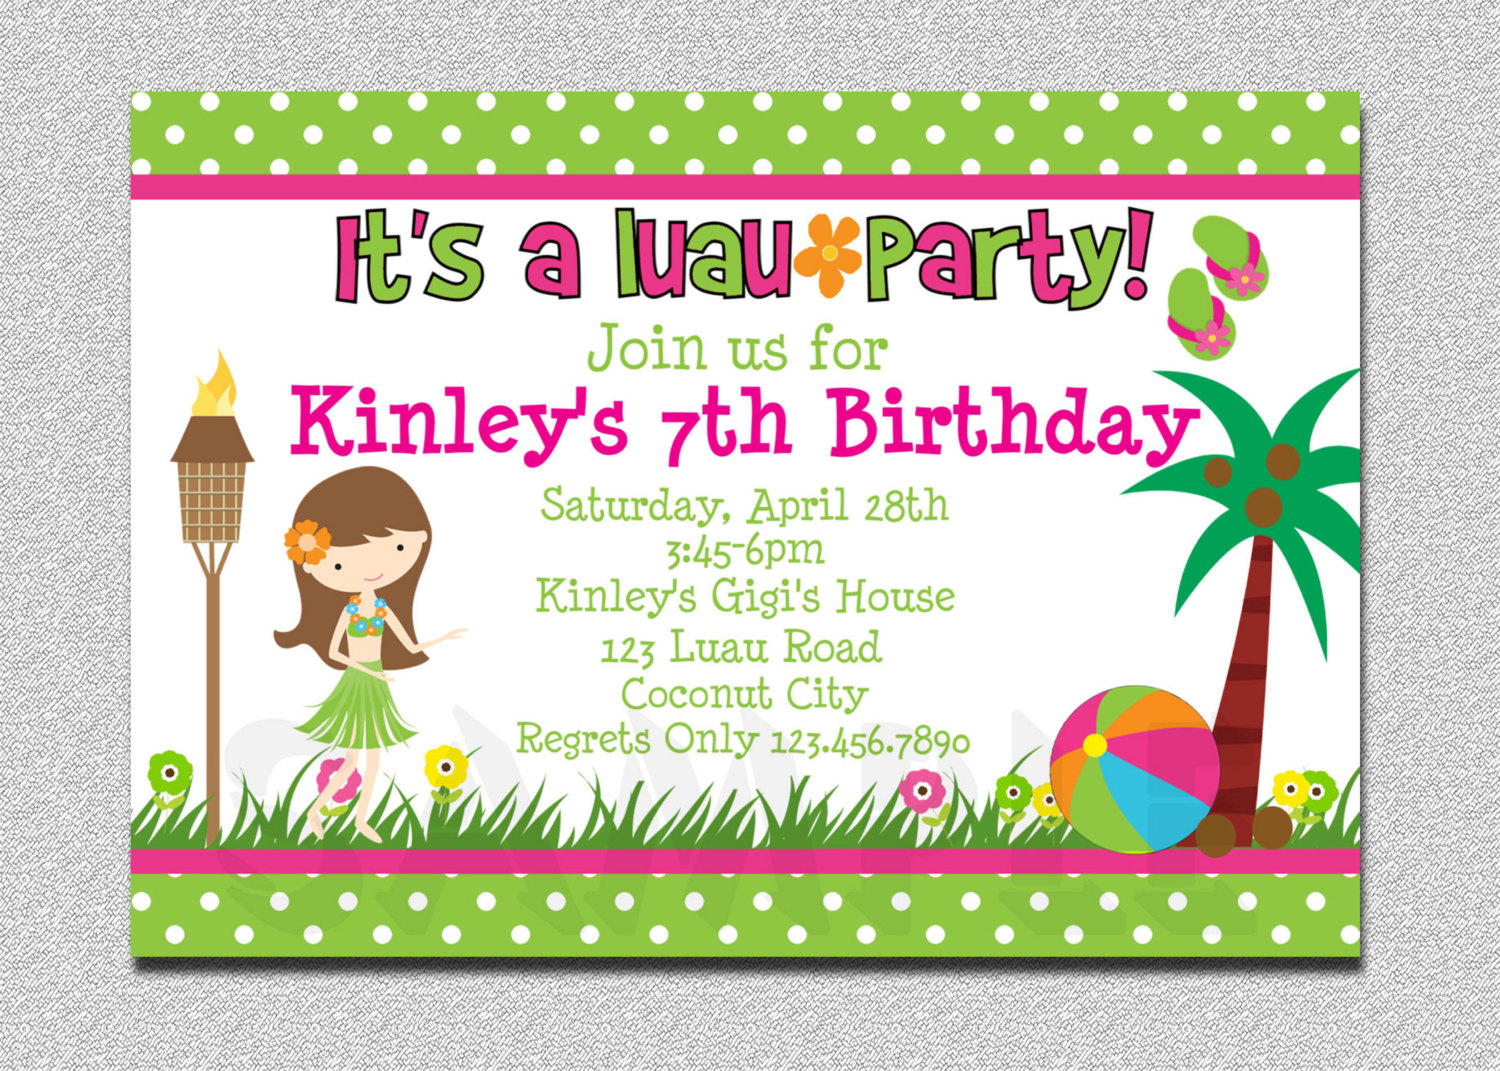 20 luau birthday invitations designs birthday party invitations luau birthday invitations stopboris Choice Image